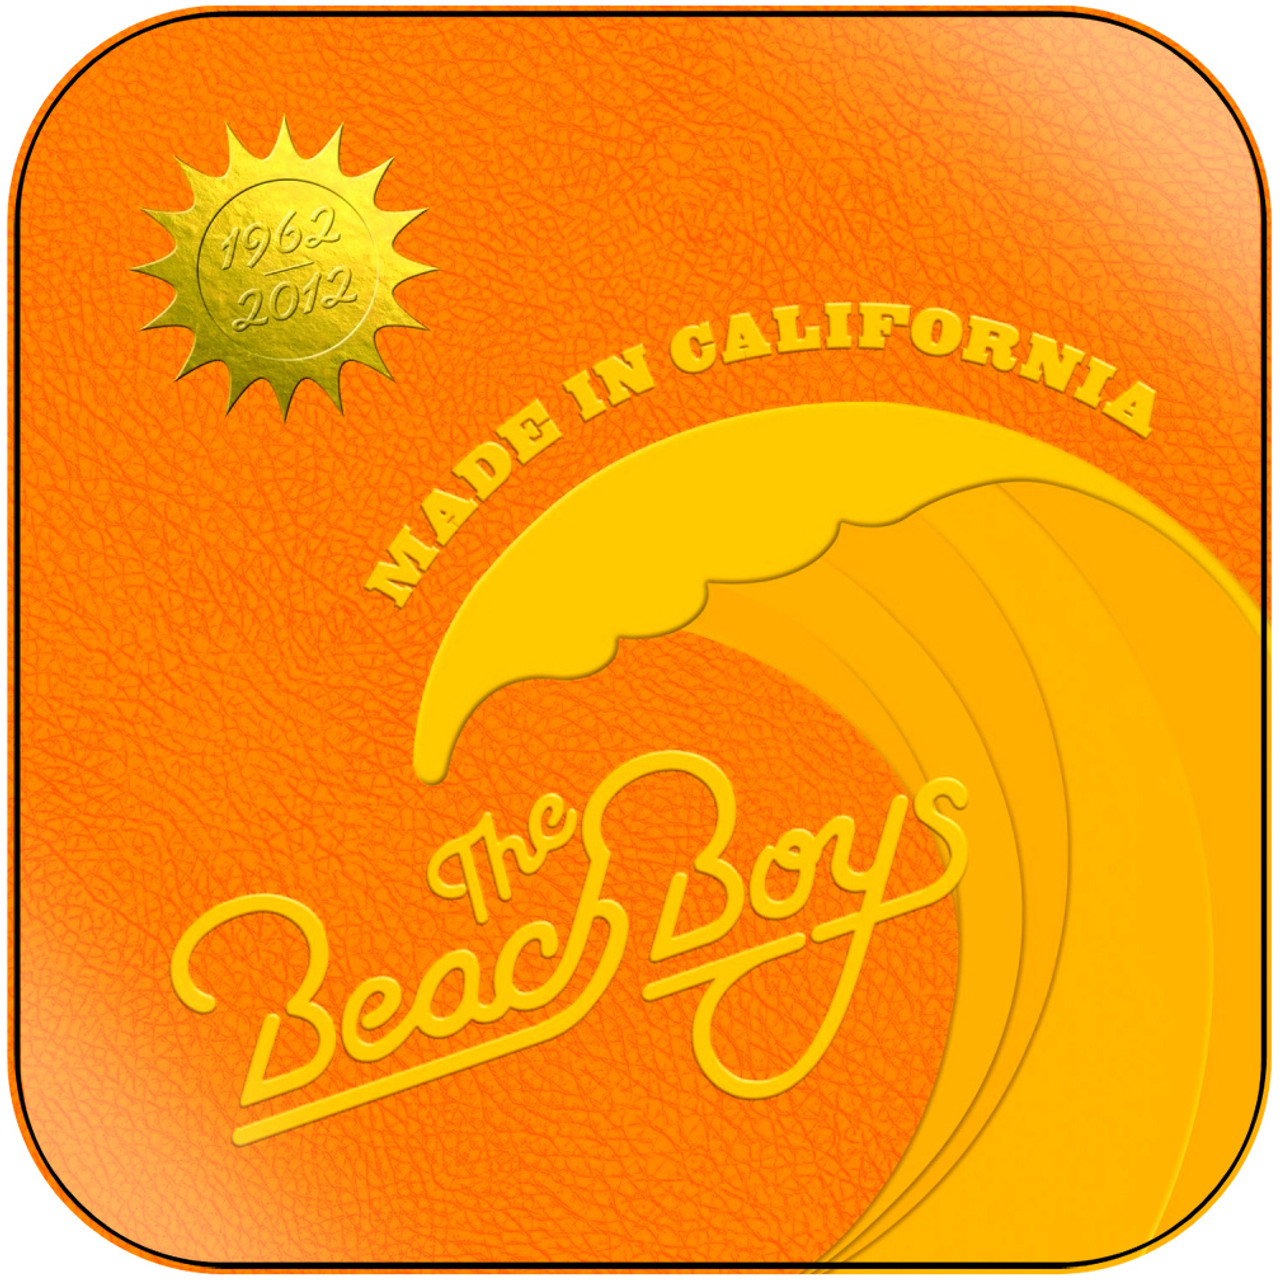 The Beach Boys Made In Usa Album Cover Sticker Album Cover Sticker